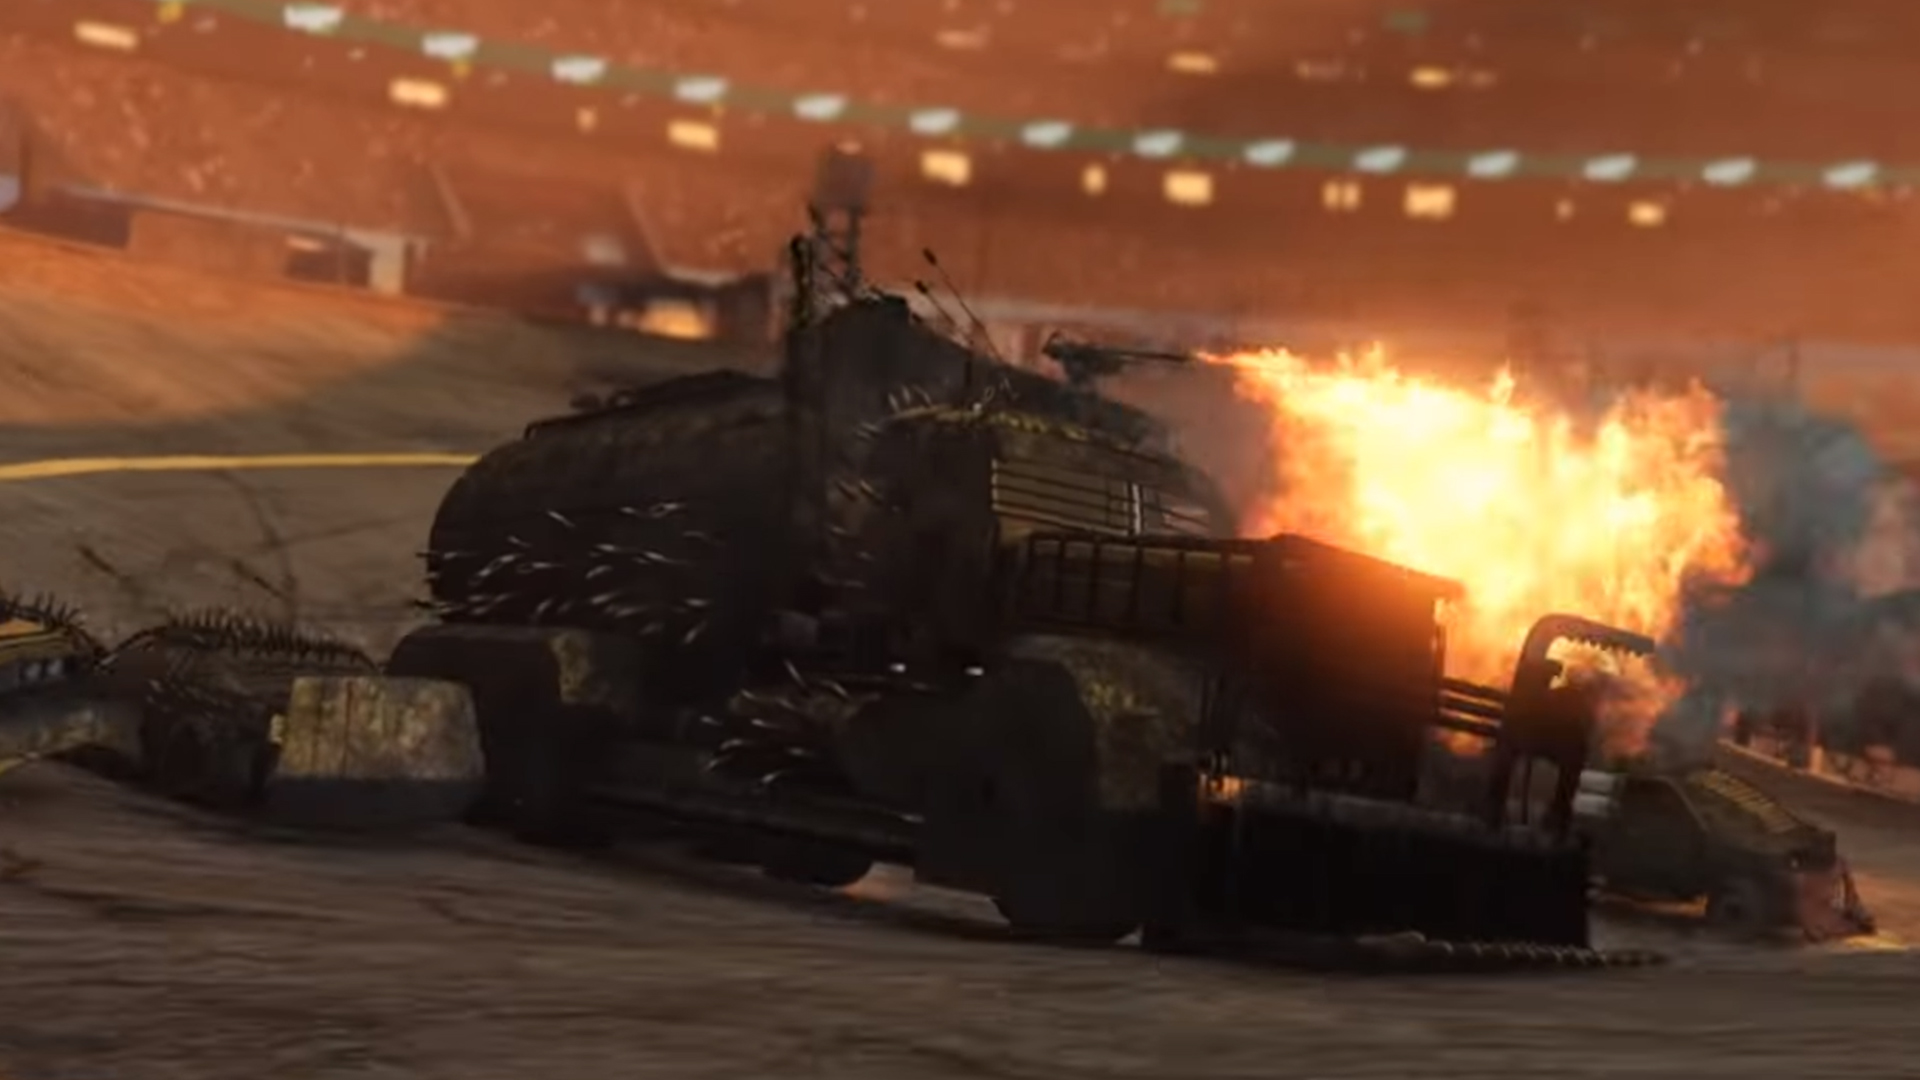 Arena War Turns Gta Online Into Twisted Metal - Gta V Arena Wars Vehicles , HD Wallpaper & Backgrounds